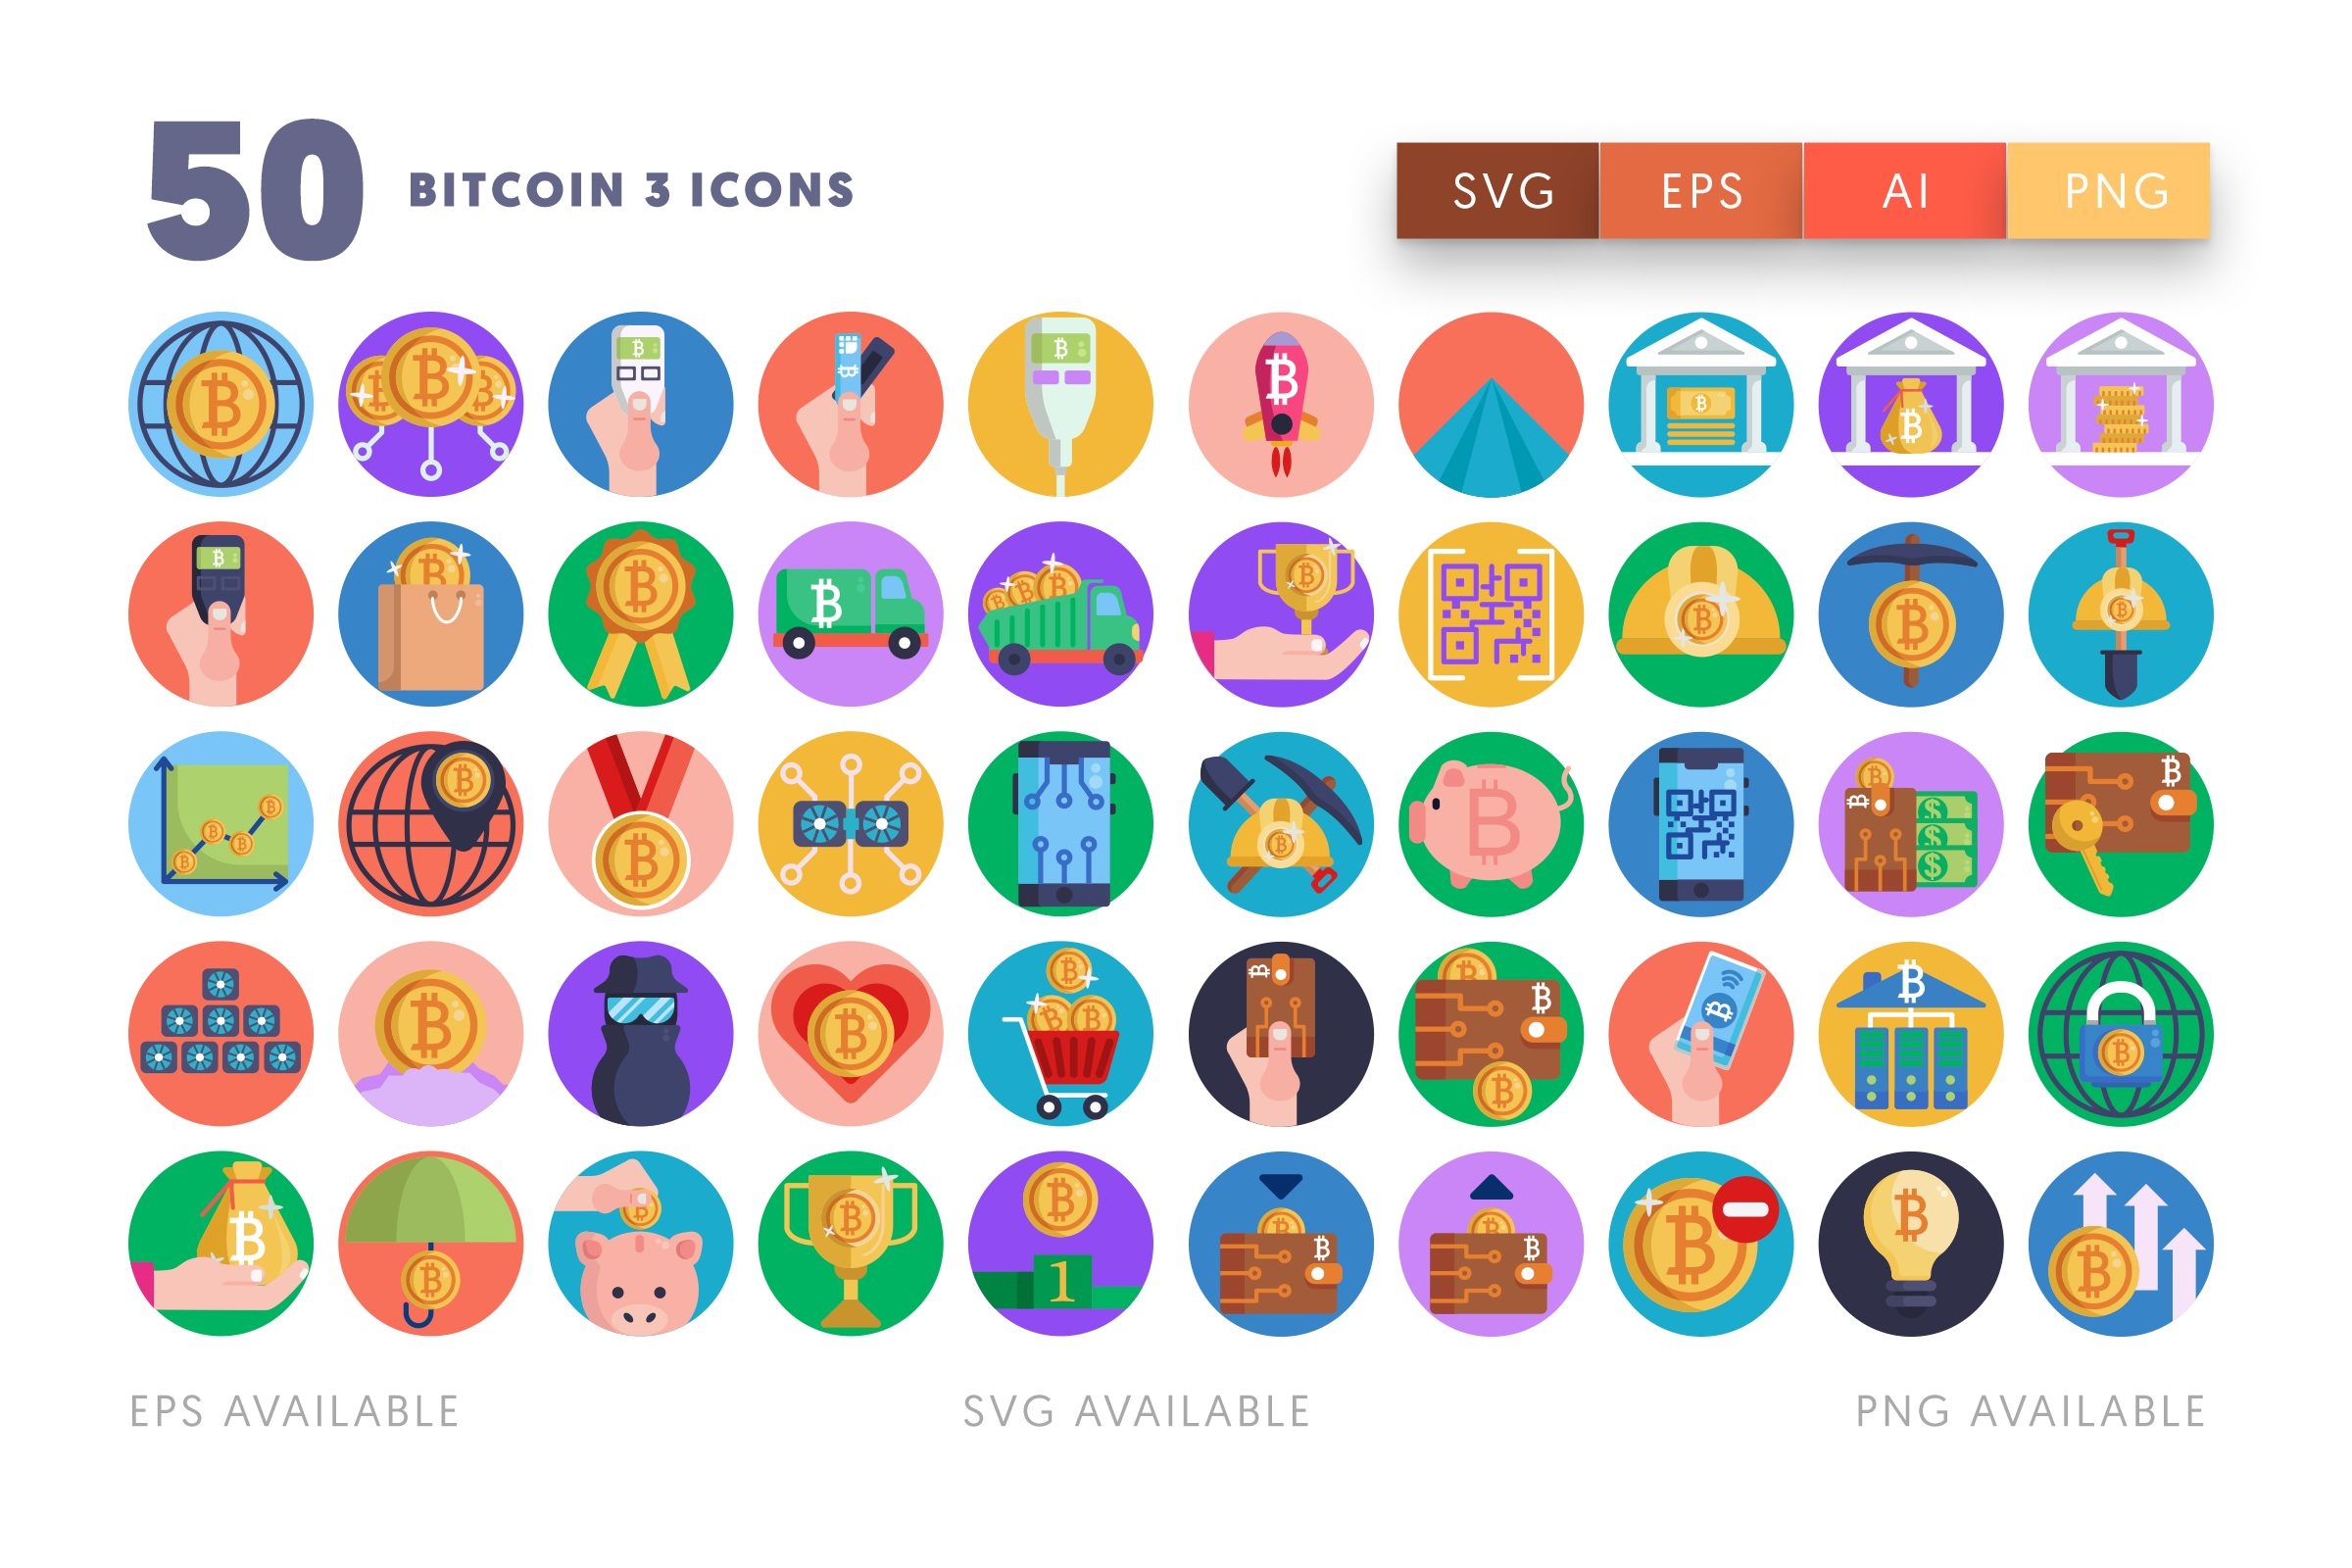 Bitcoin 3 icons png/svg/eps